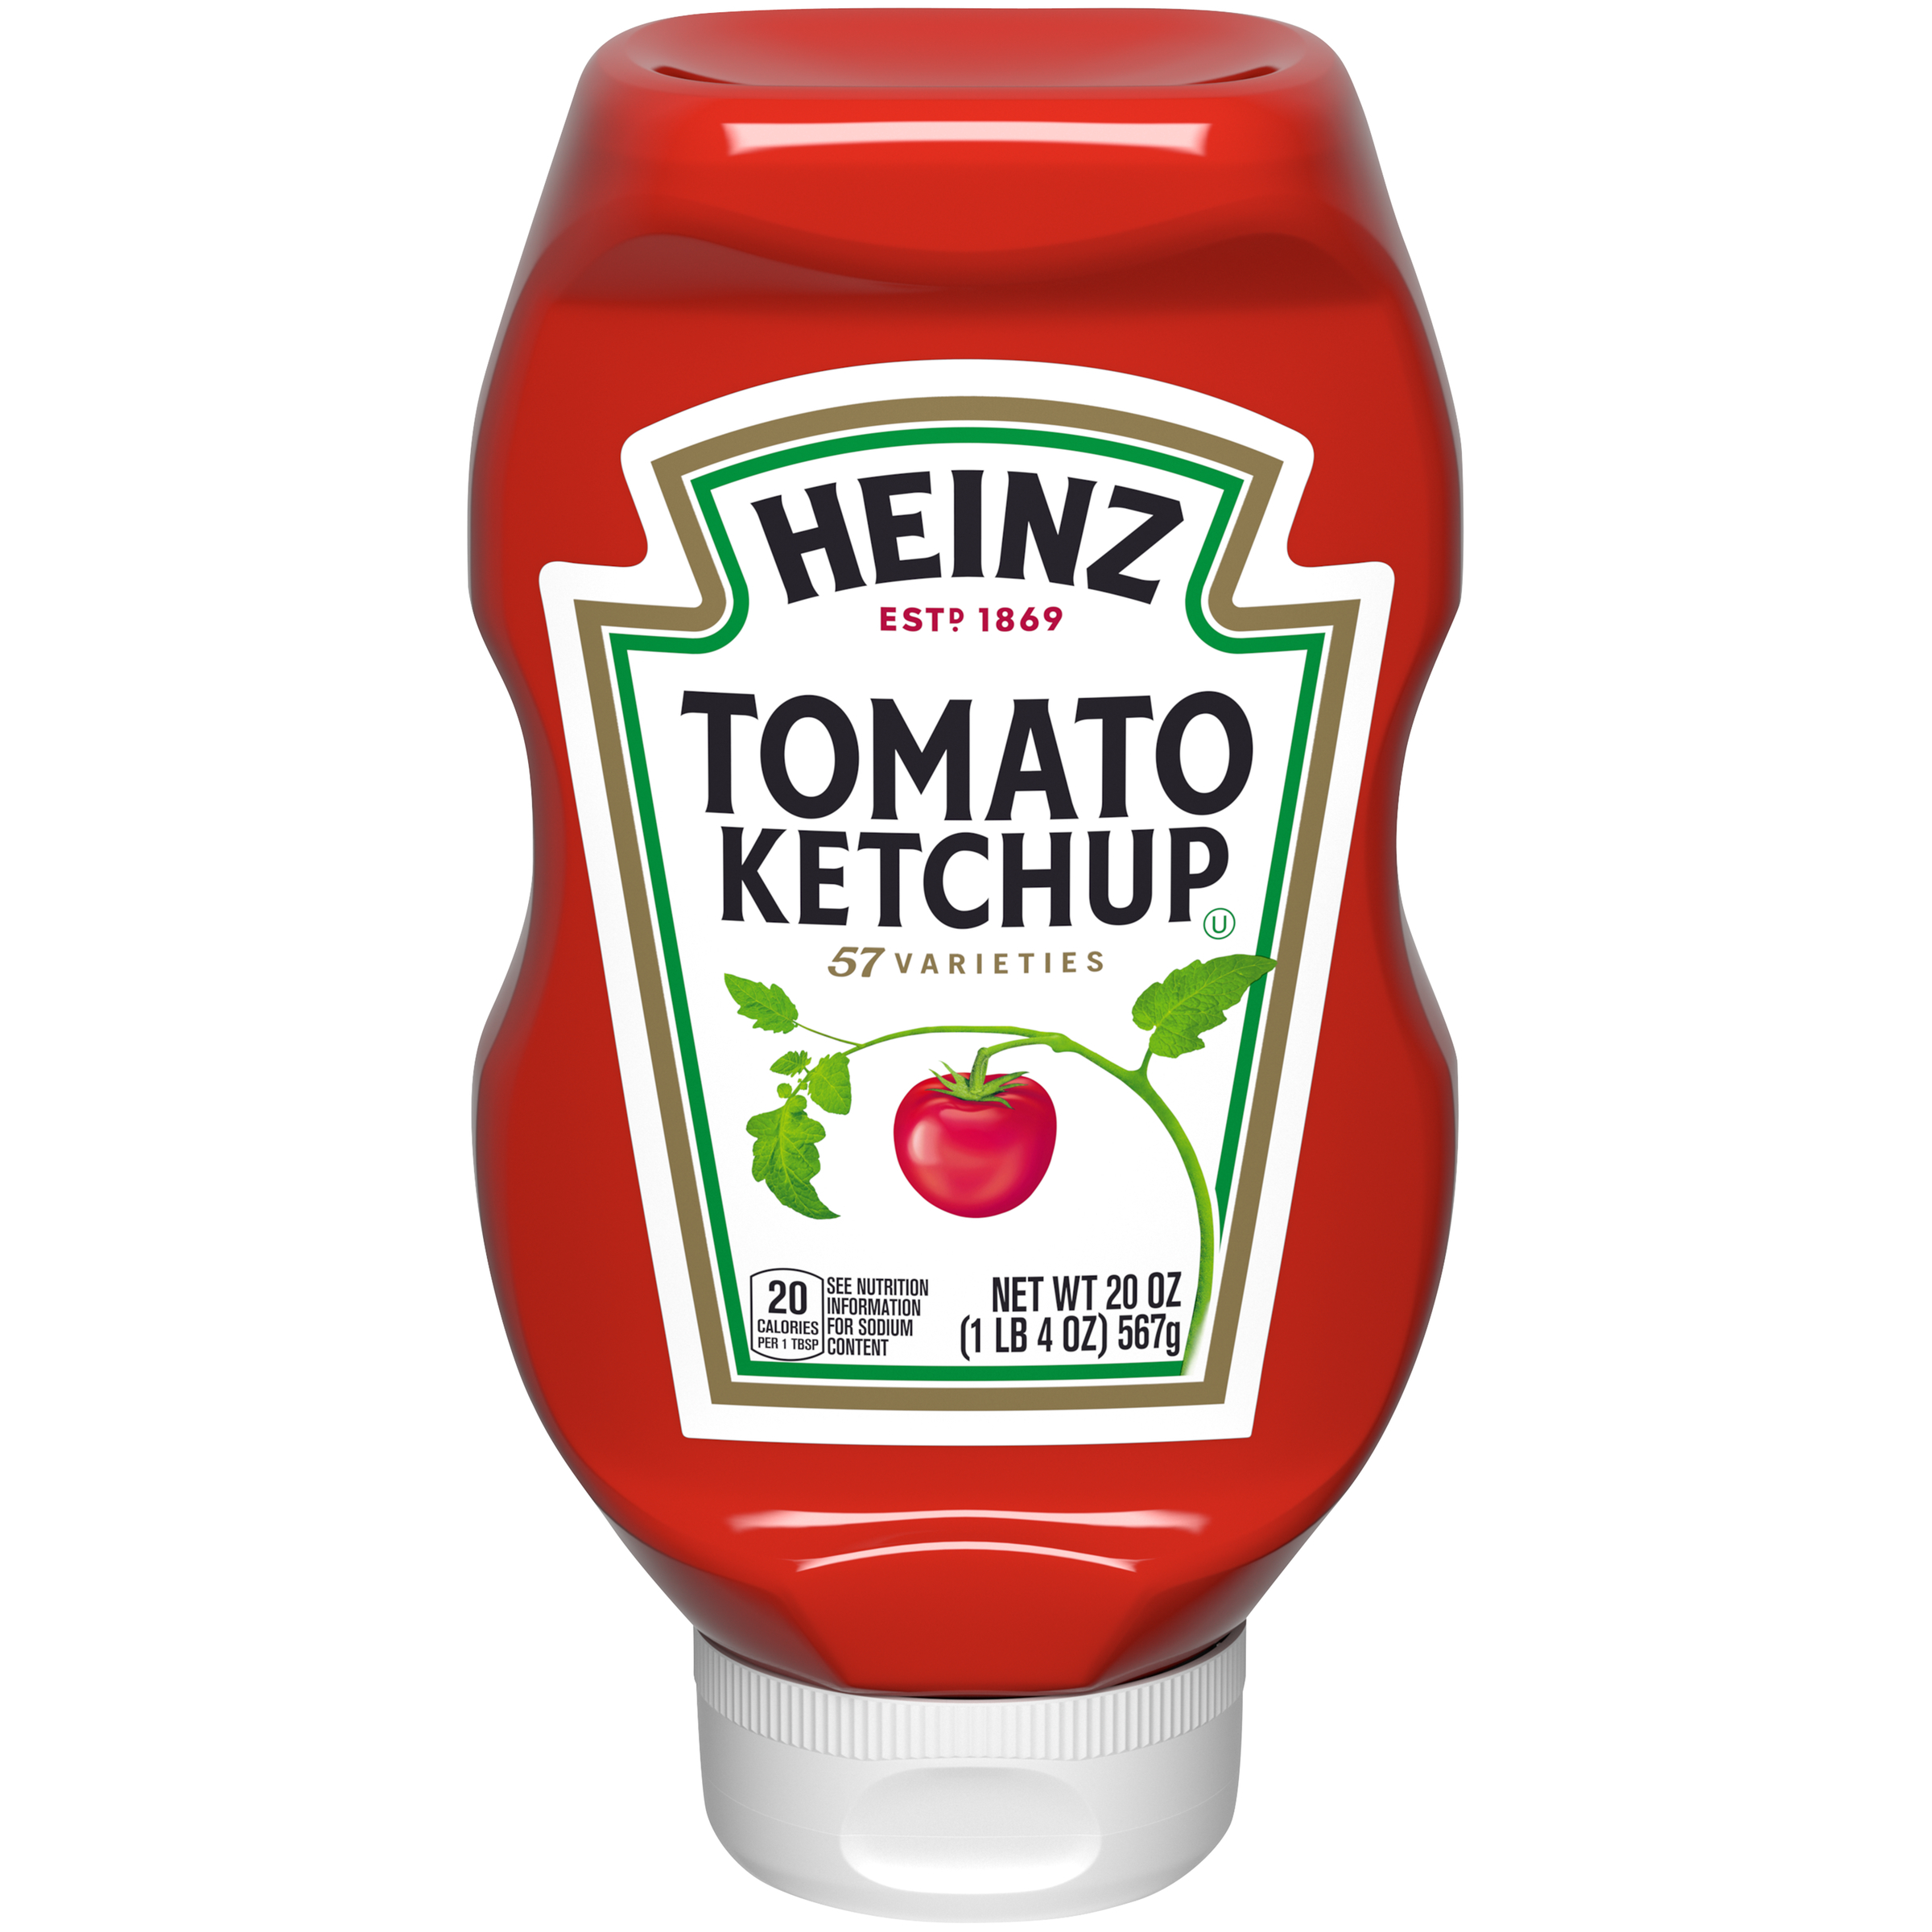 Heinz Tomato Ketchup 20 oz Squeeze Bottle image